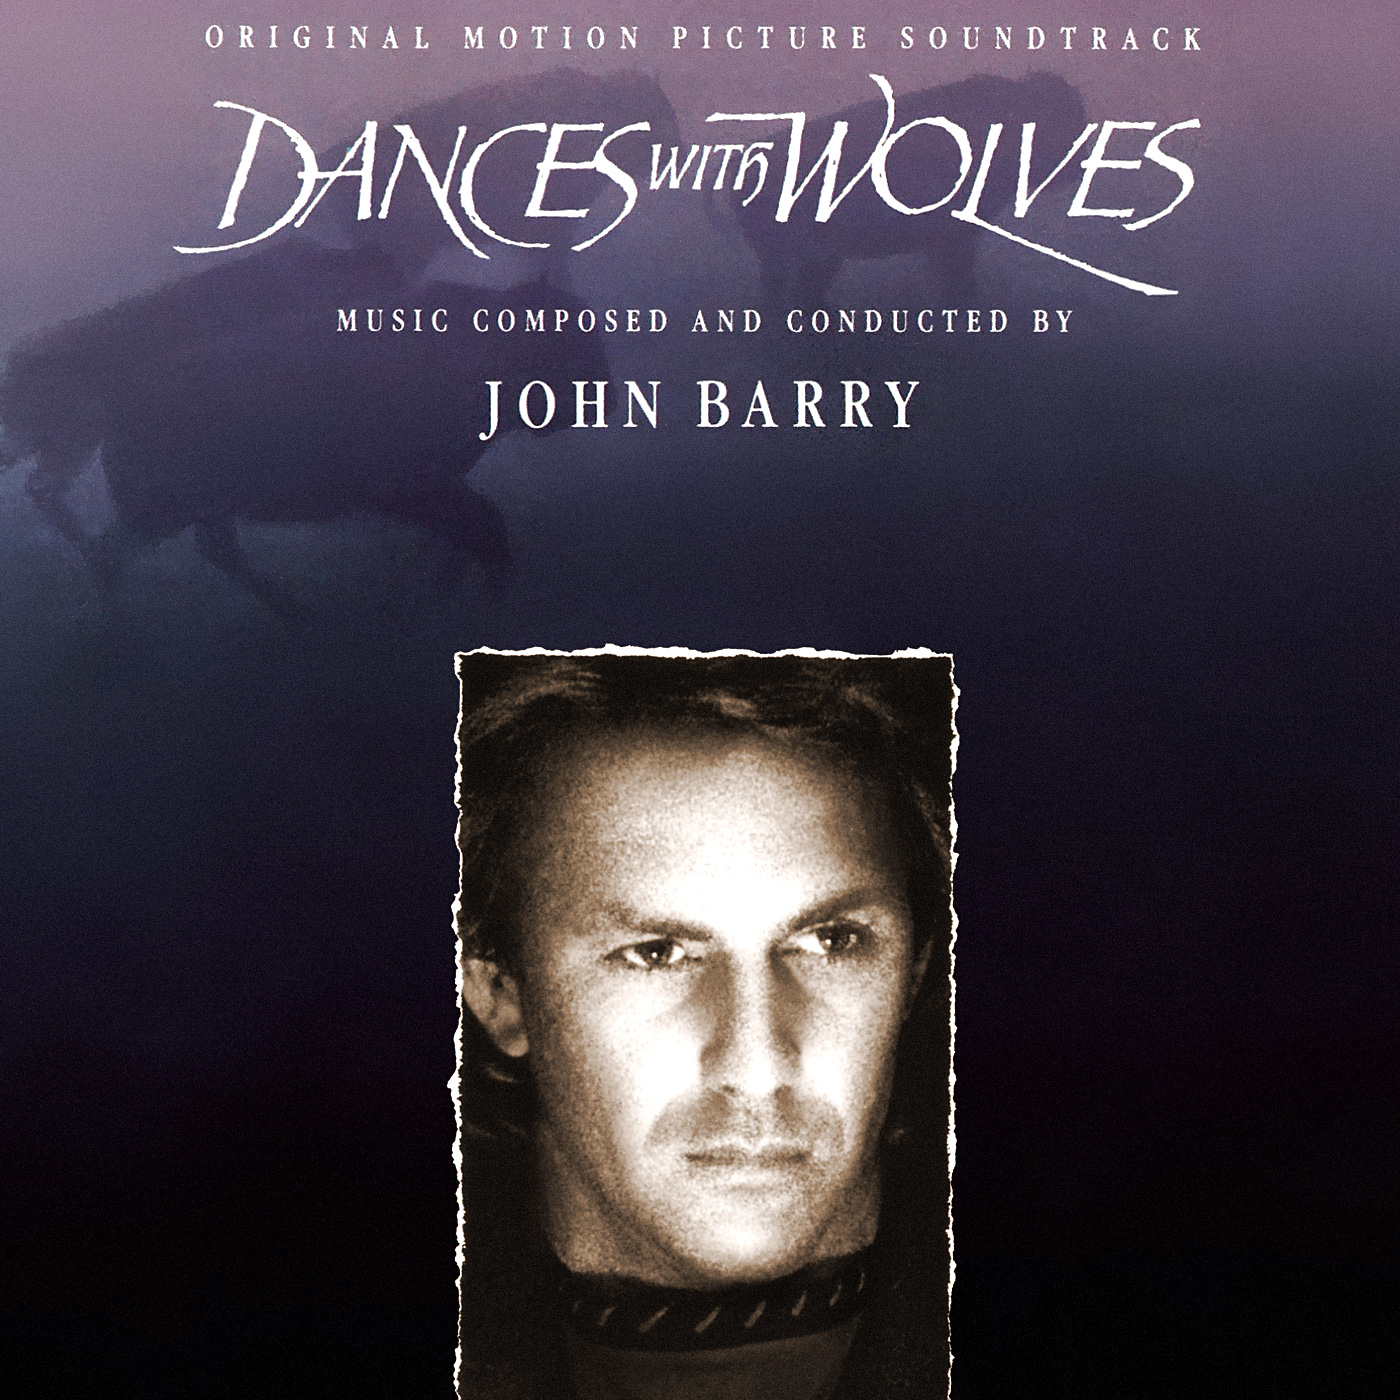 Album Artist: John Barry / Album Title: Dances with Wolves (Original Motion Picture Soundtrack)